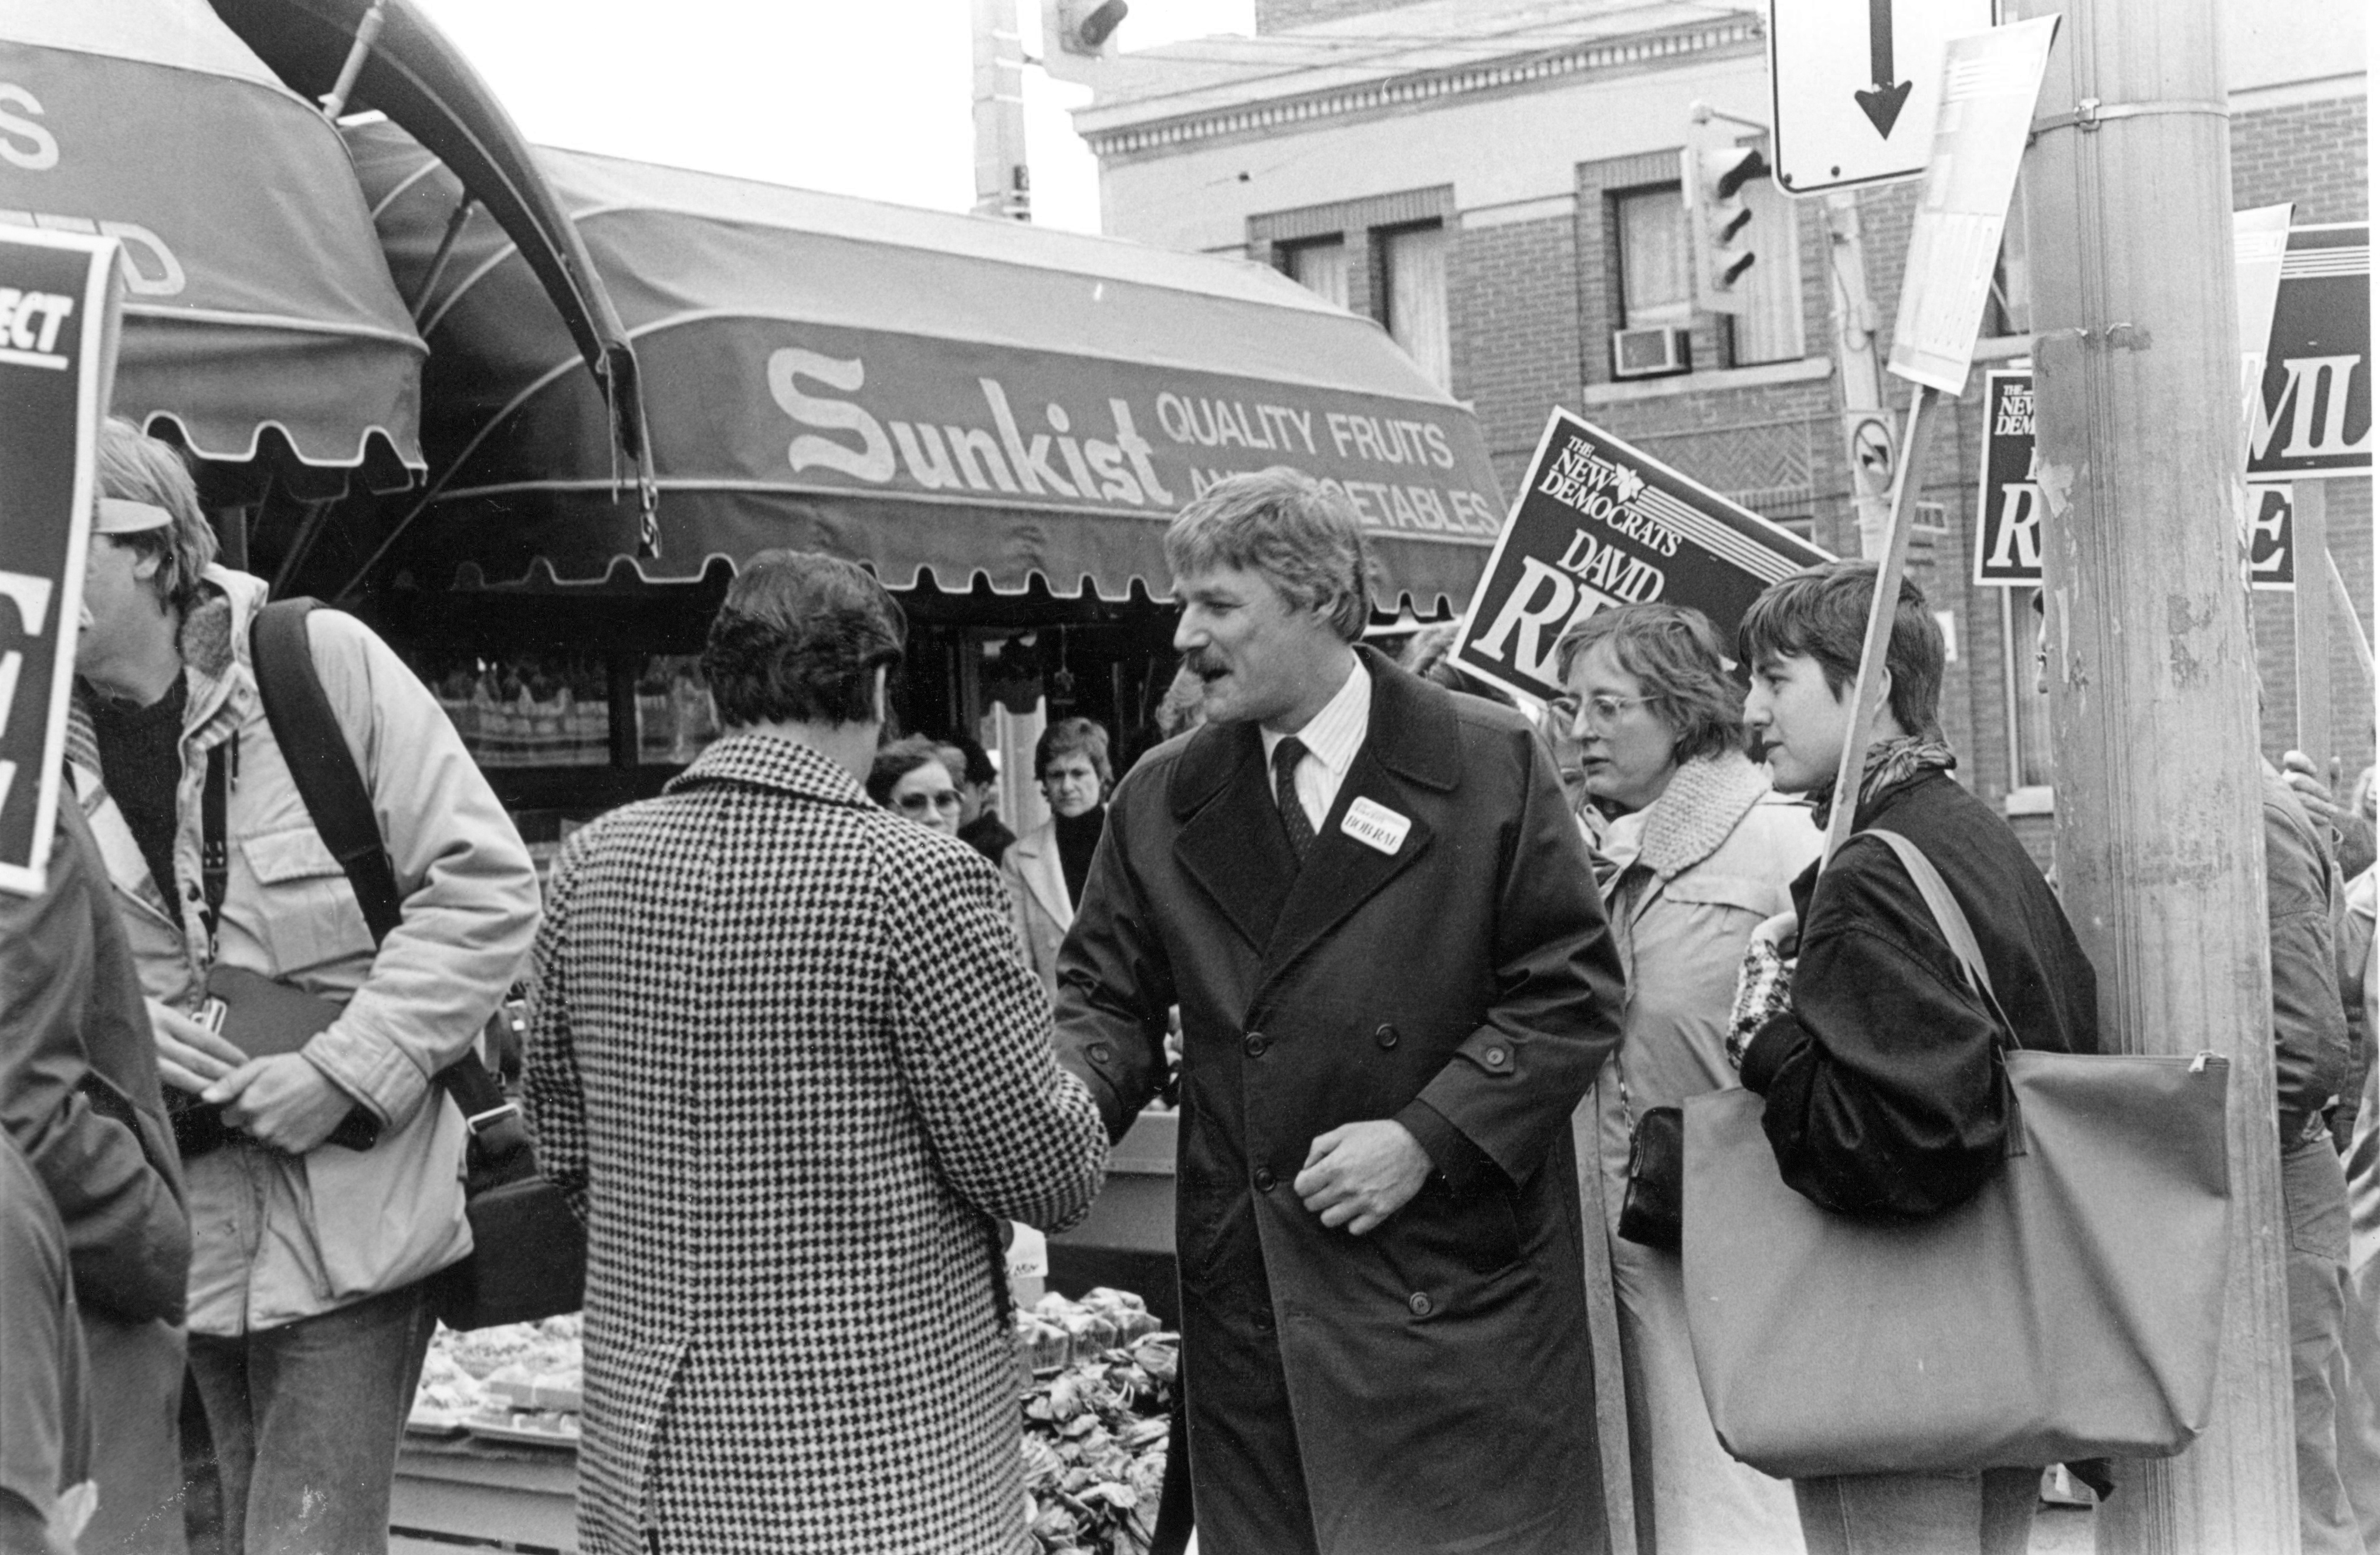 Reville shaking hands with people on street in front of shops